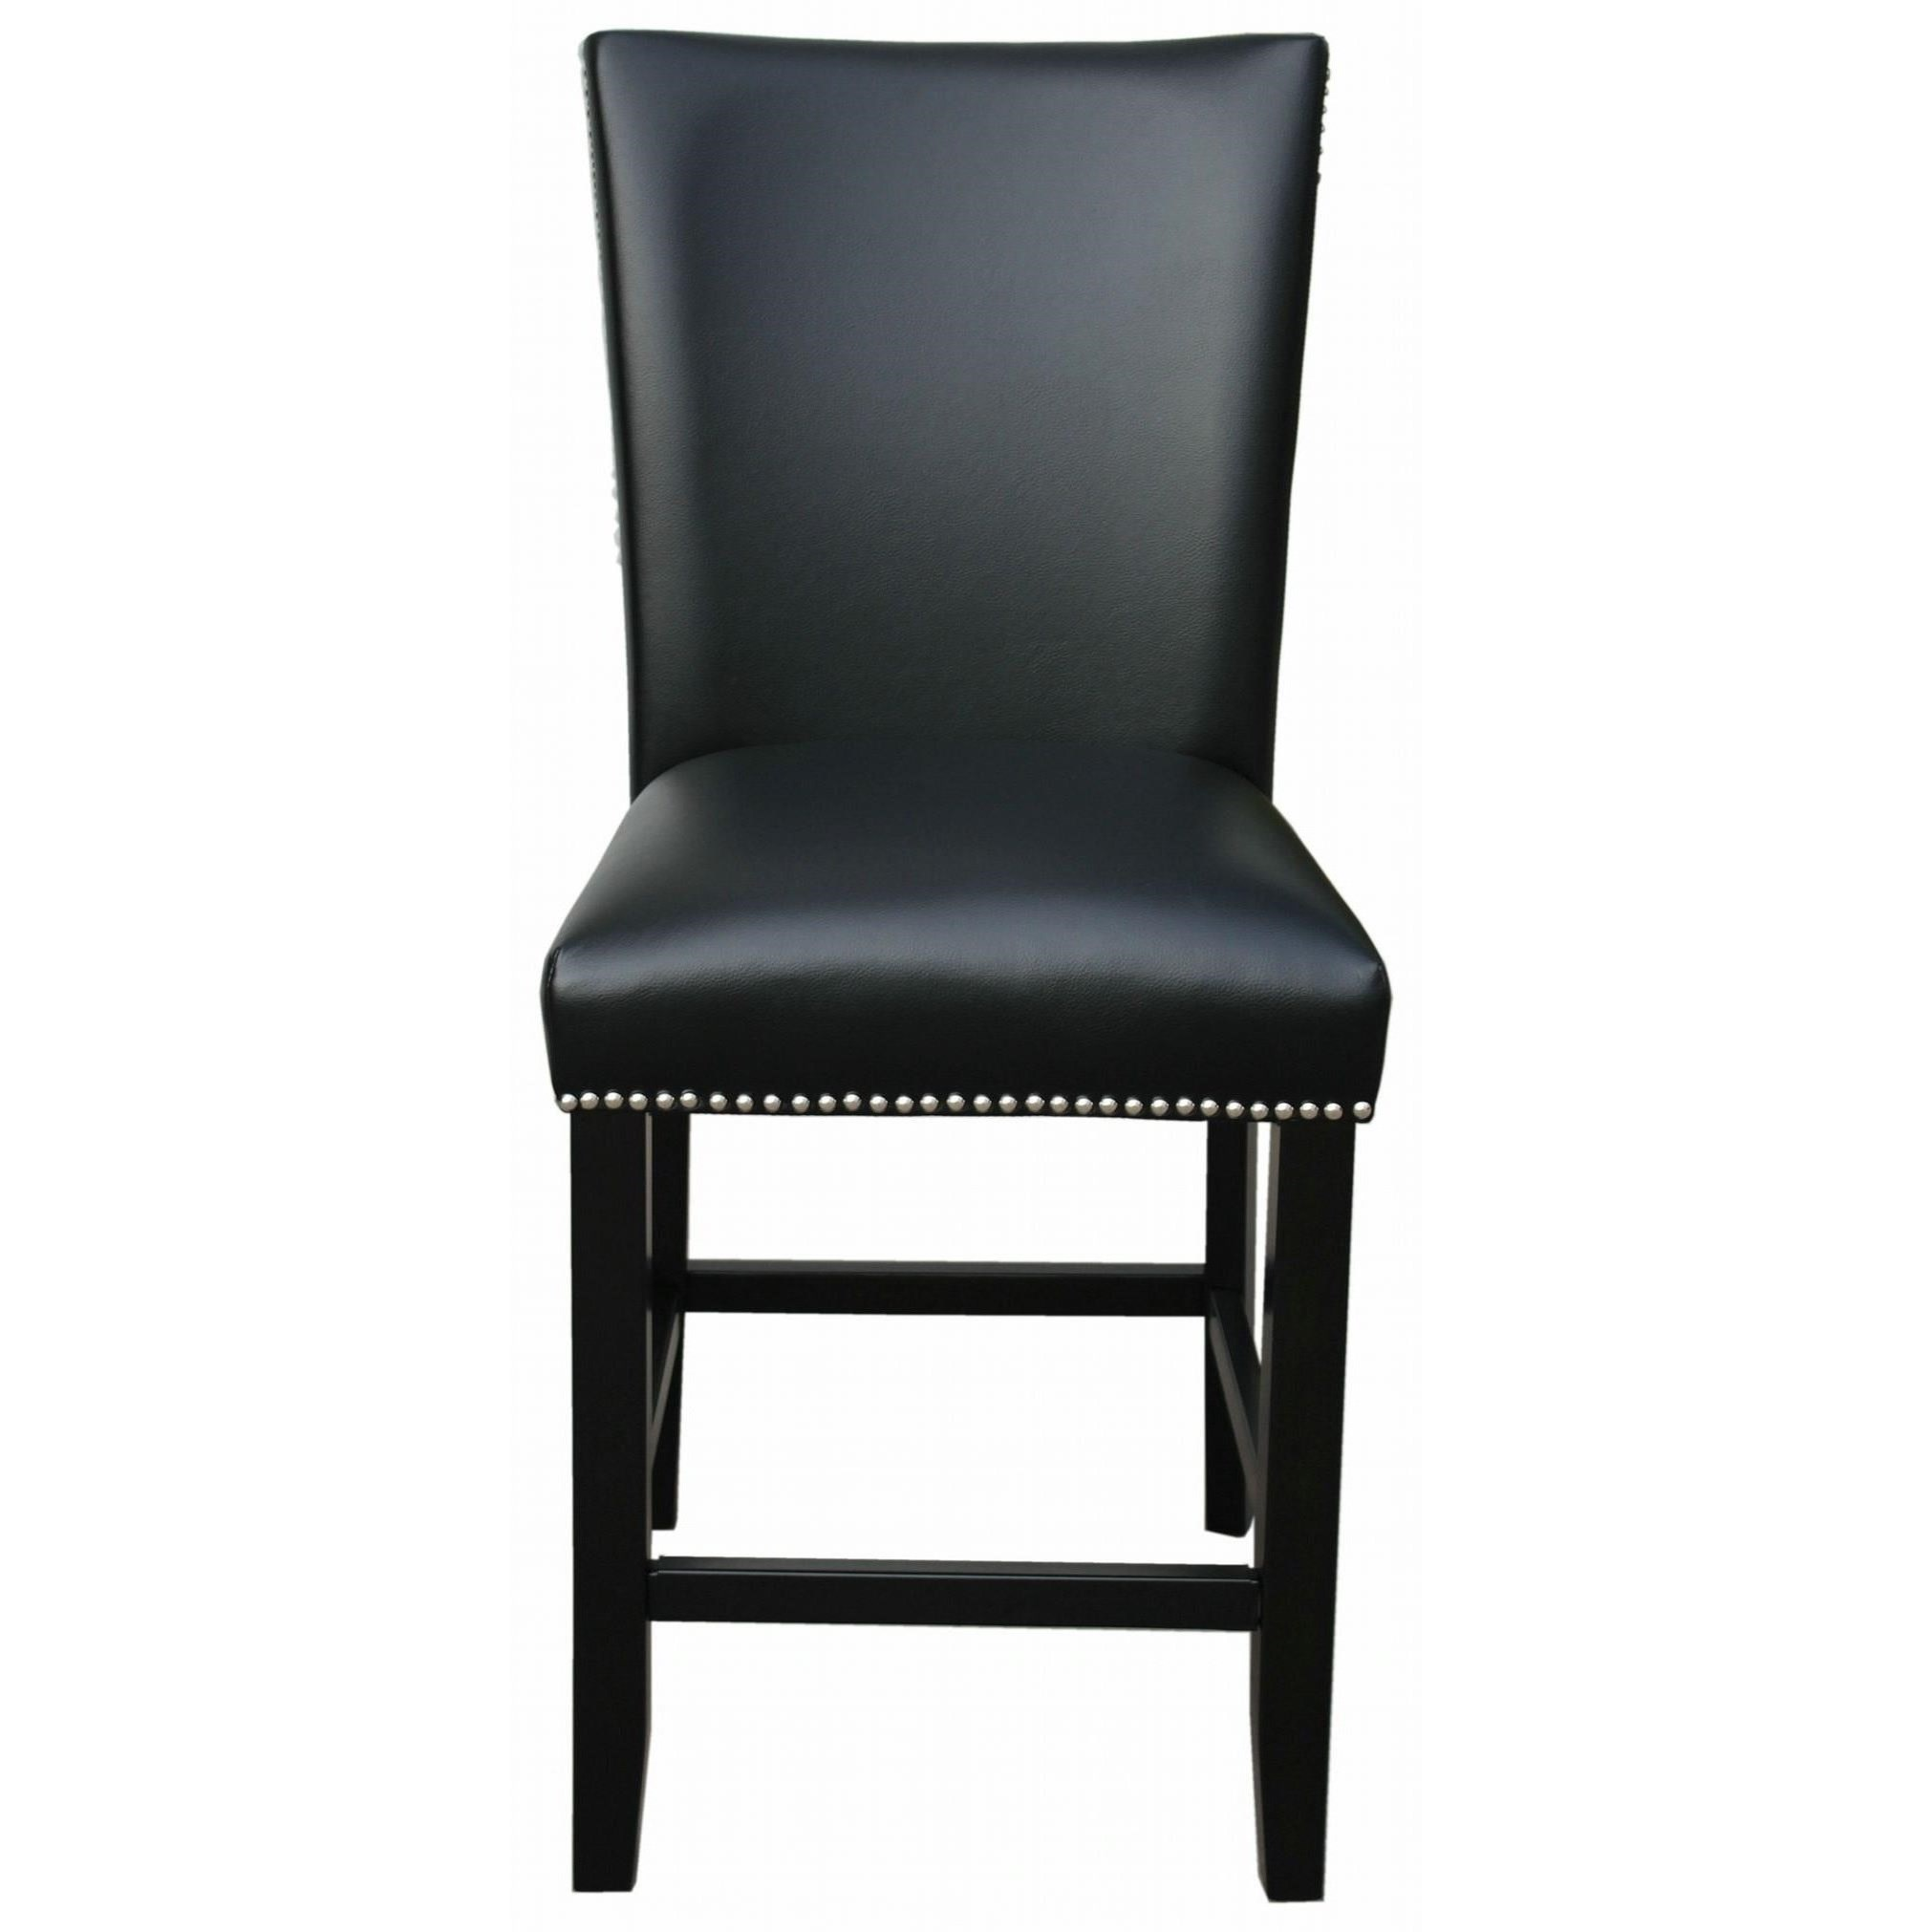 Camila Upholstered Counter Chair with Nailhead by Steve Silver at Northeast Factory Direct